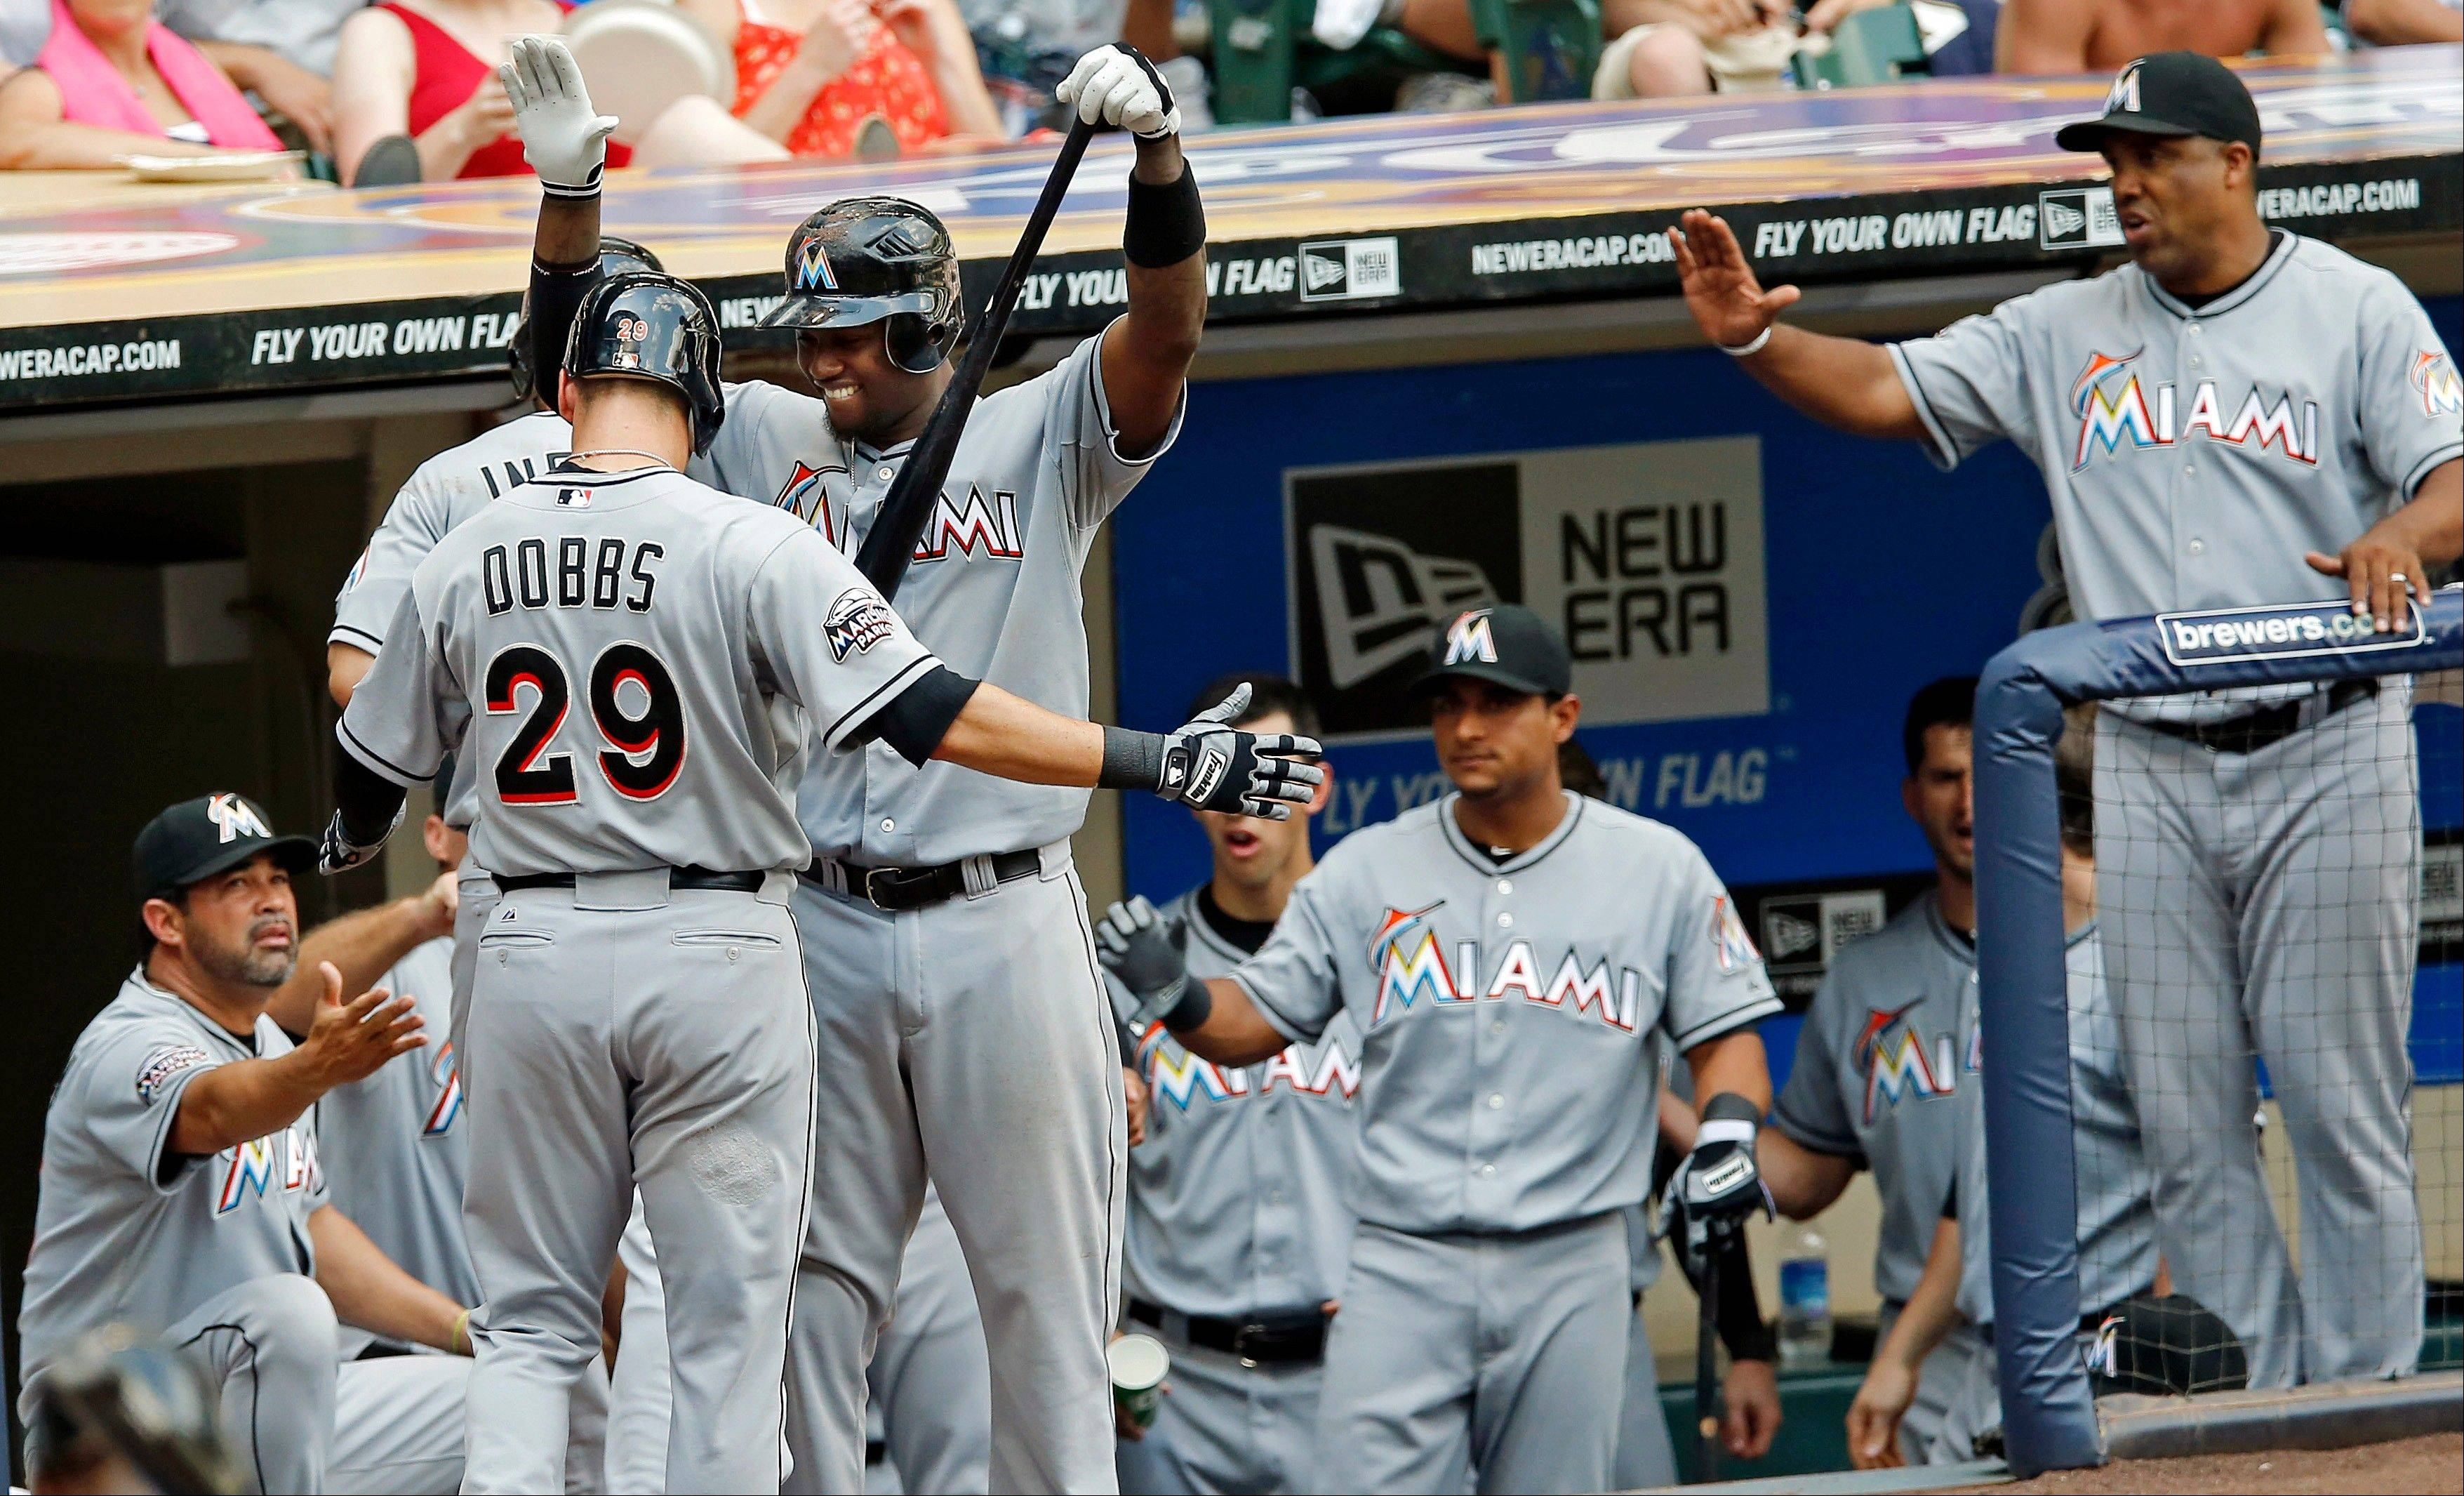 The Miami Marlins' Greg Dobbs is greeted by teammates at the dugout Thursday after hitting a two-run home run off Milwaukee Brewers pitcher Jose Veras during the ninth inning in Milwaukee. The Marlins won 4-0.